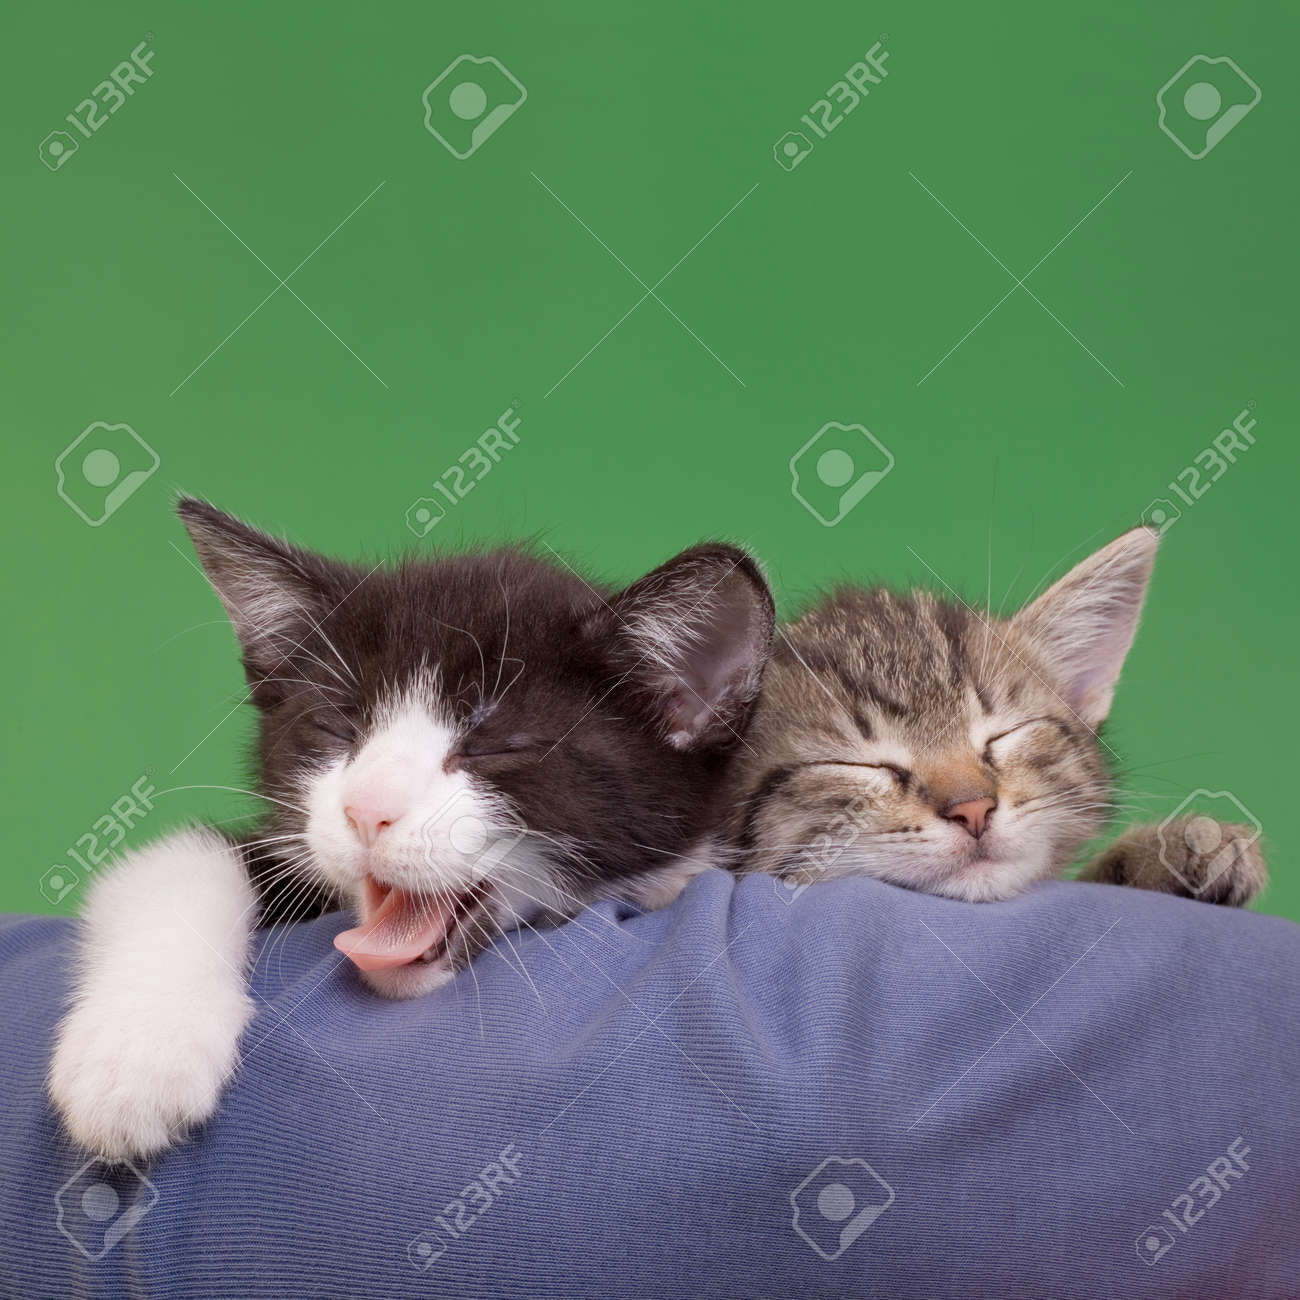 Two Dreamy Cats Domestic Cats Isolated on Green Background Standard-Bild - 14062554